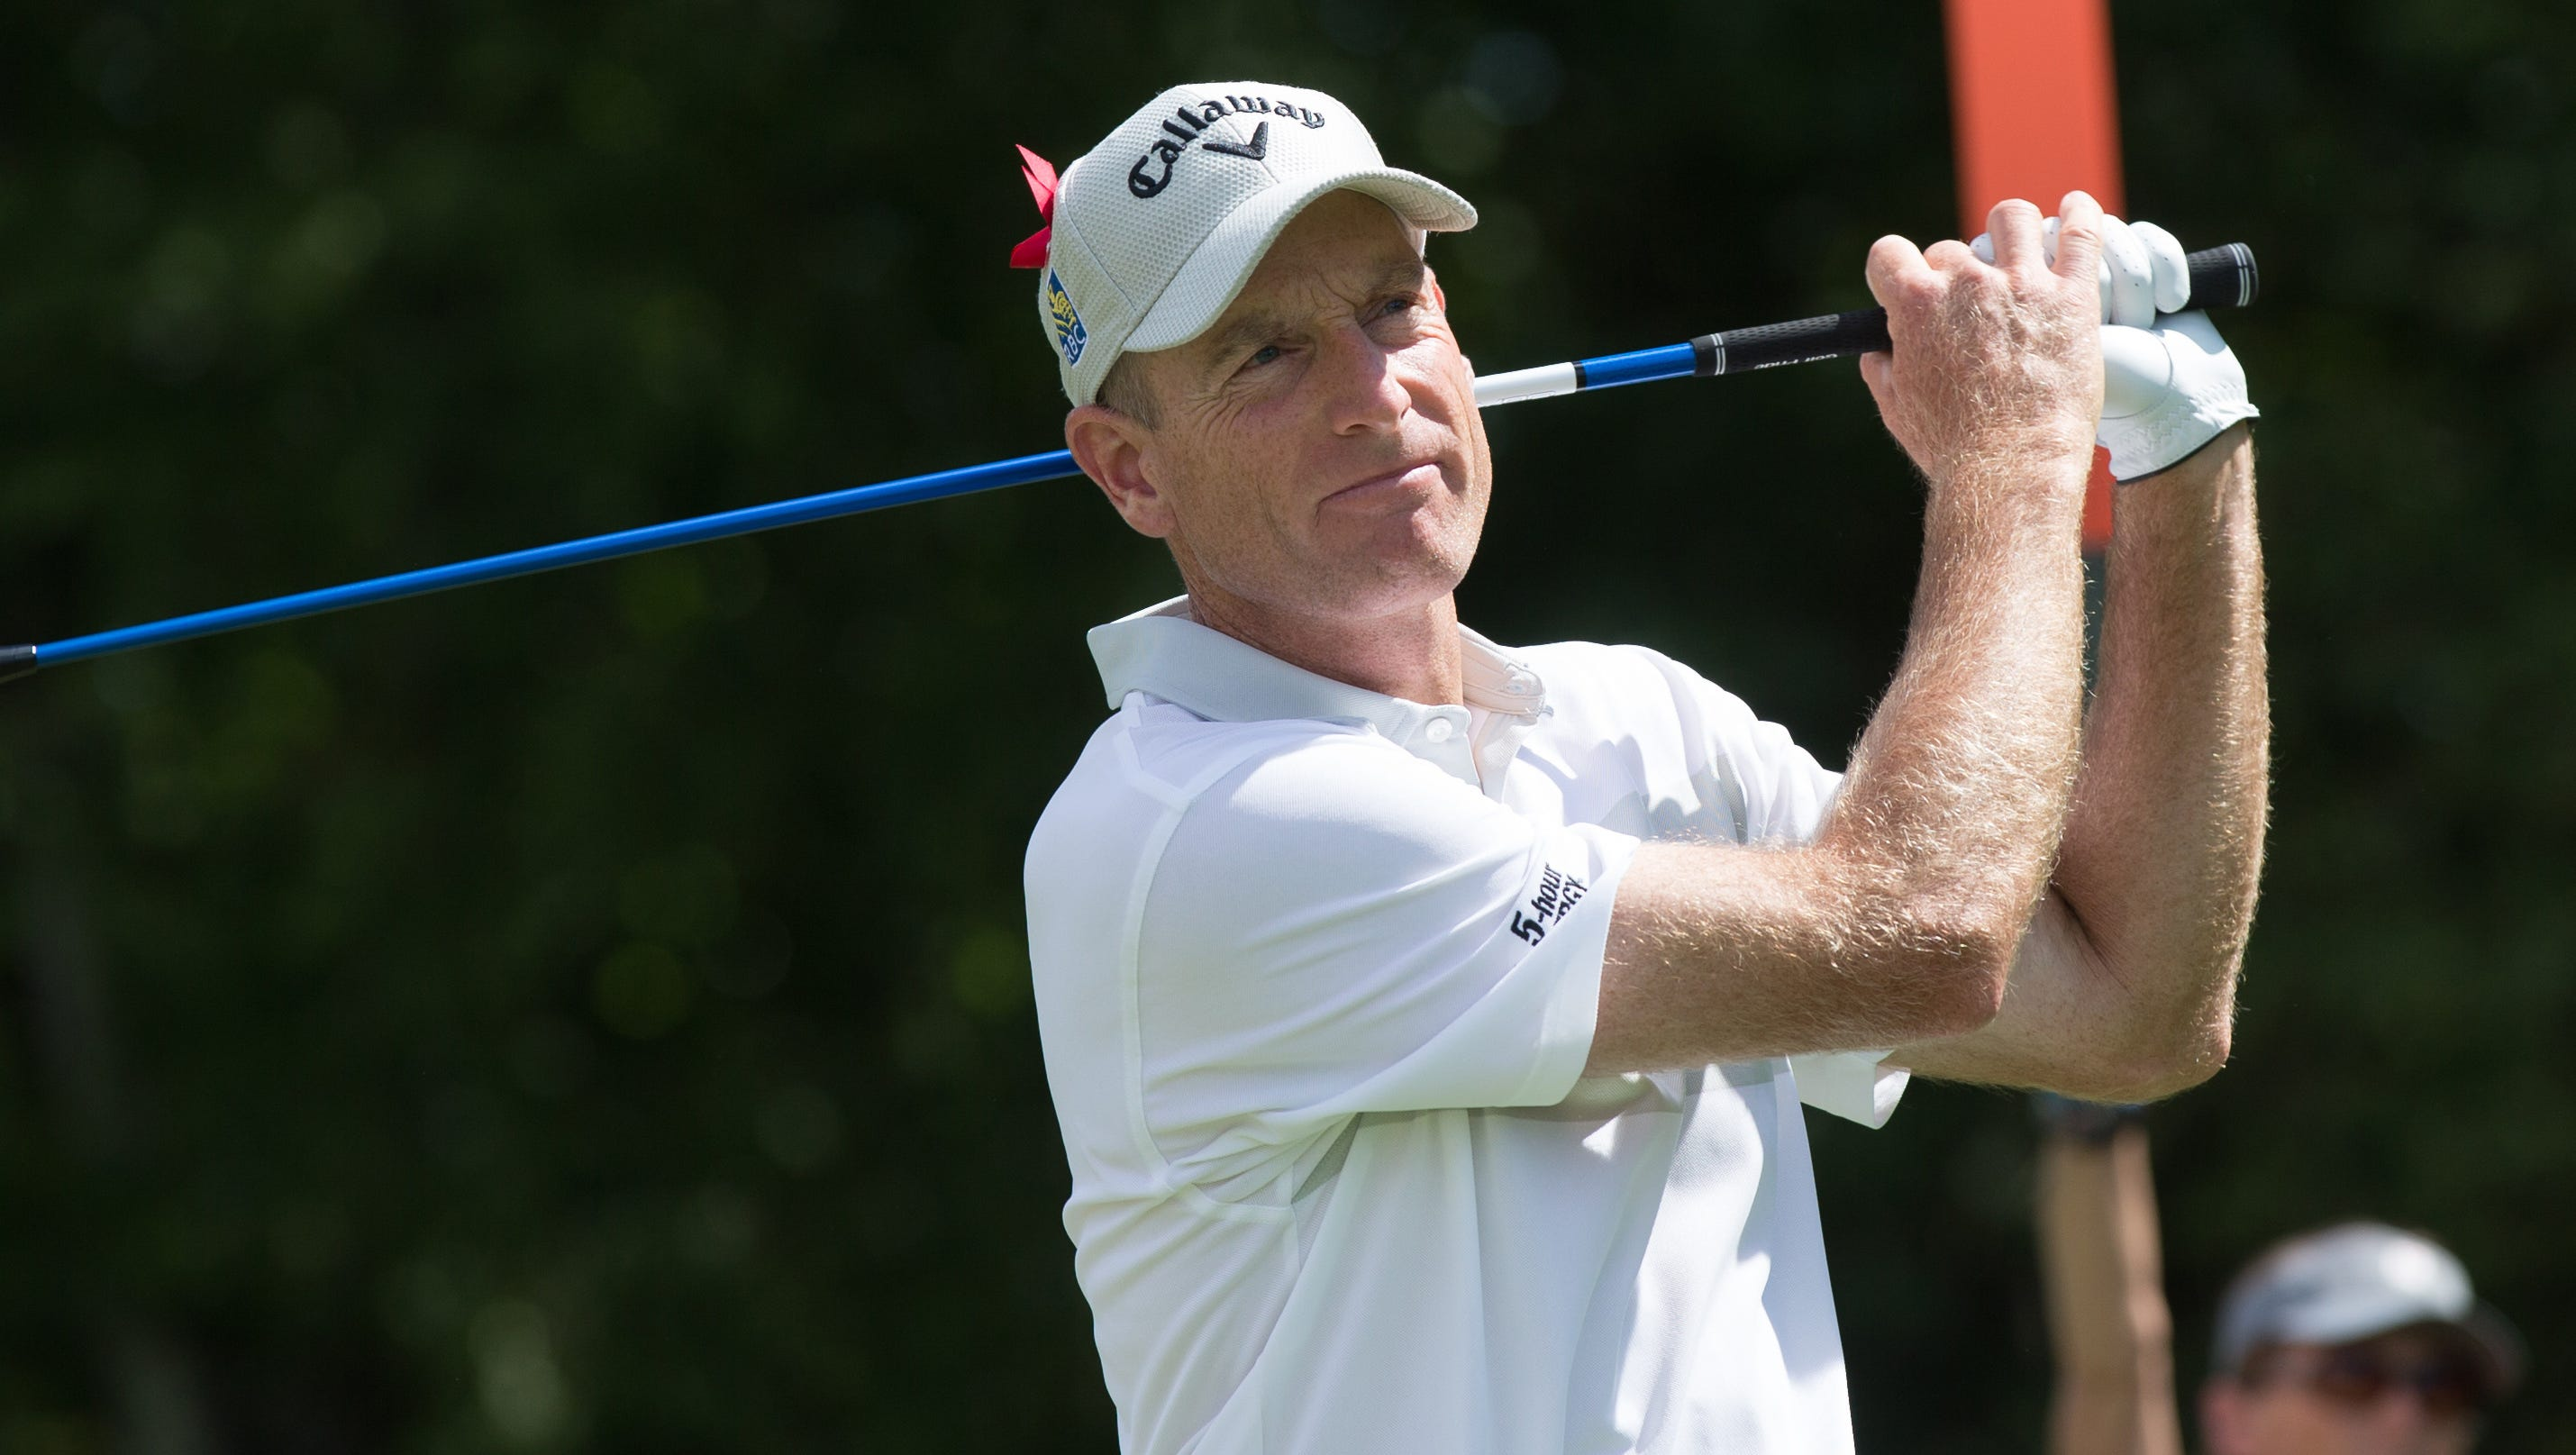 jim furyk sets pga tour record with 58 in final round at